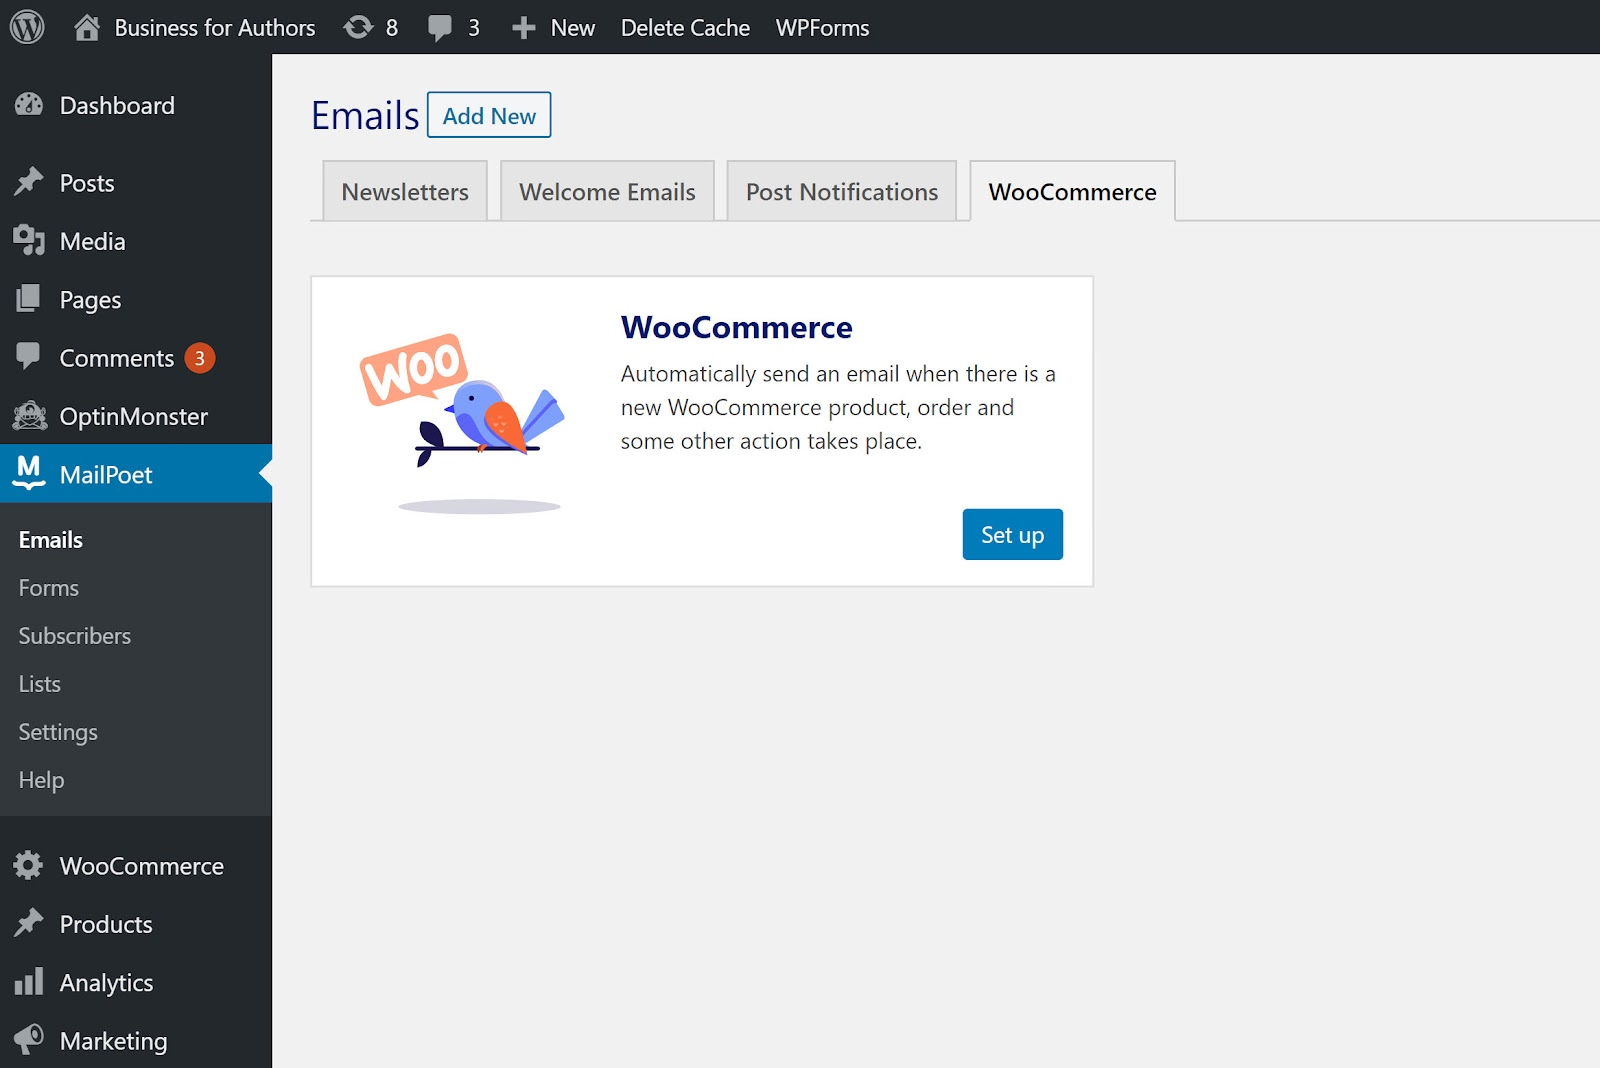 Screenshot of MailPoet's WooCommerce integration